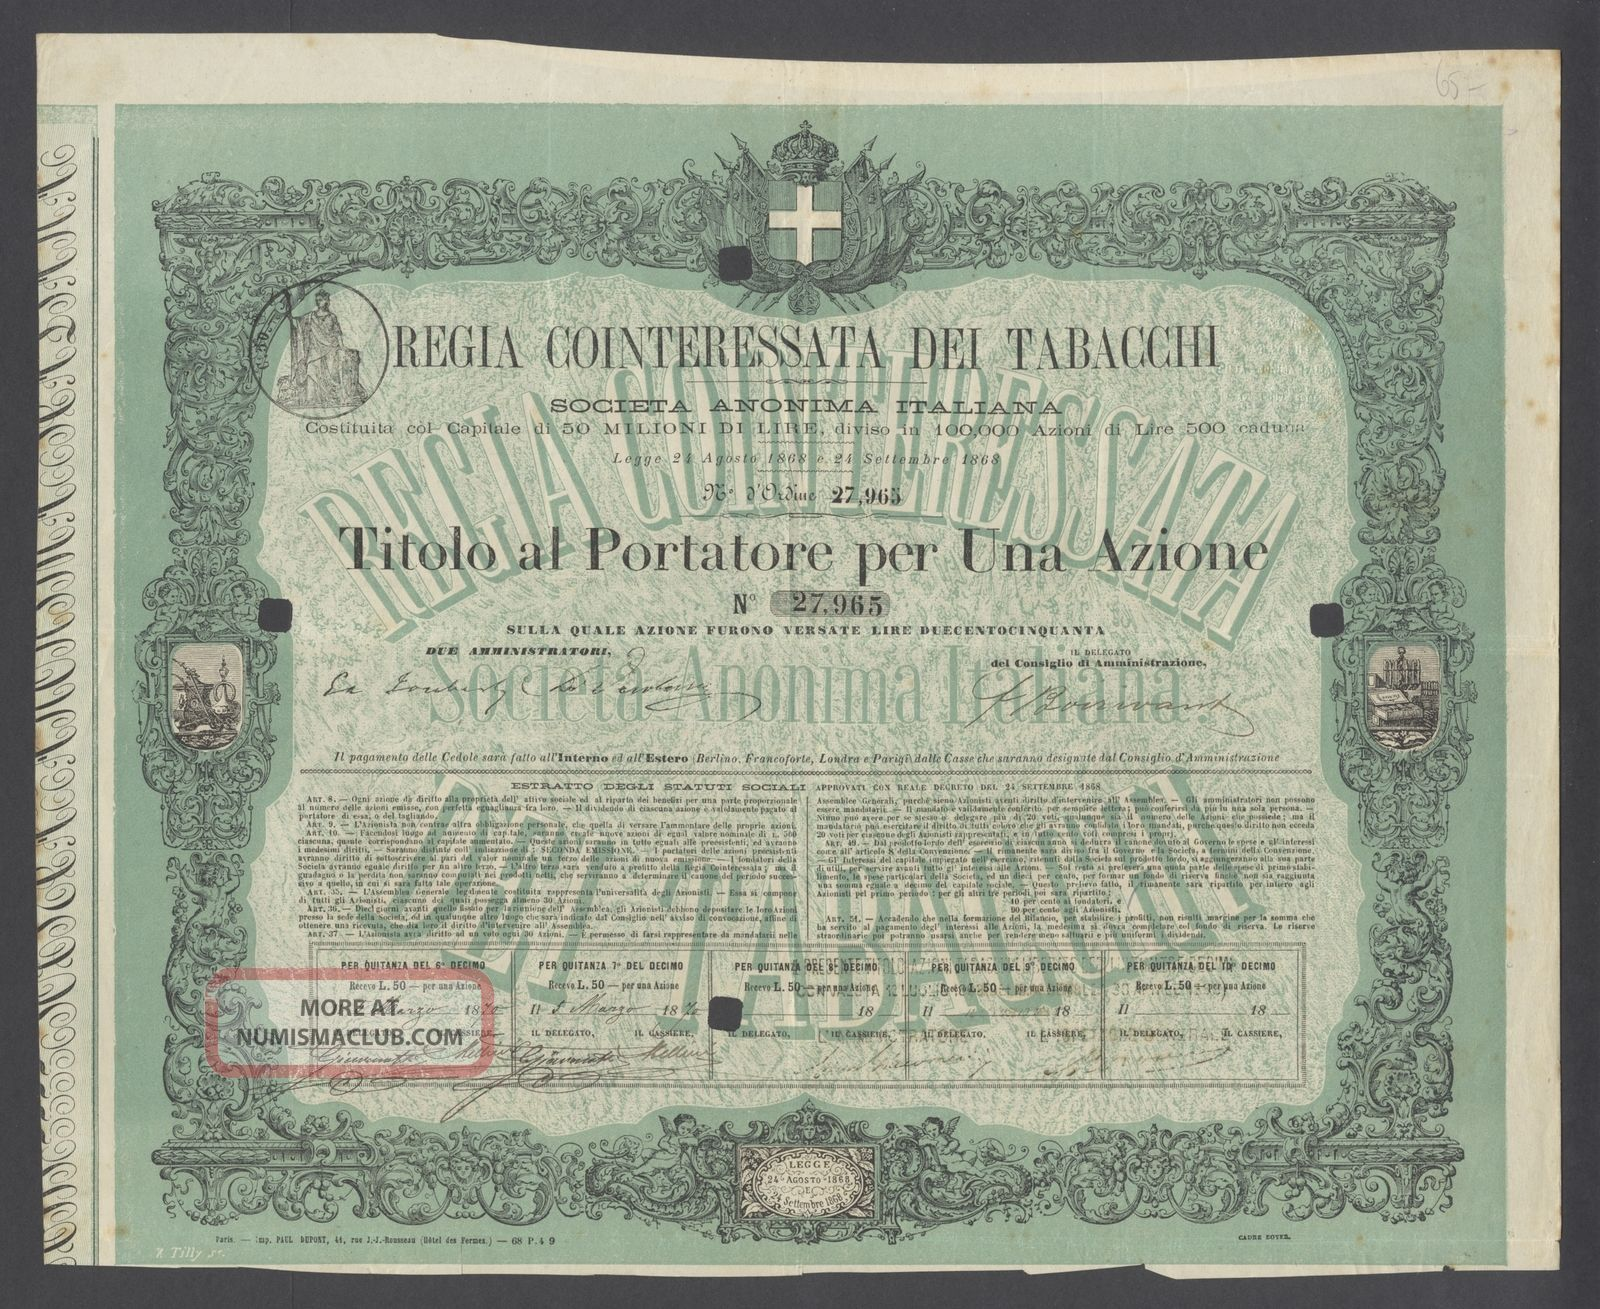 Italy 1870 Ornate Bond Certificate Reggia Cointeressata Dei Tabacchi.  B1573 World photo